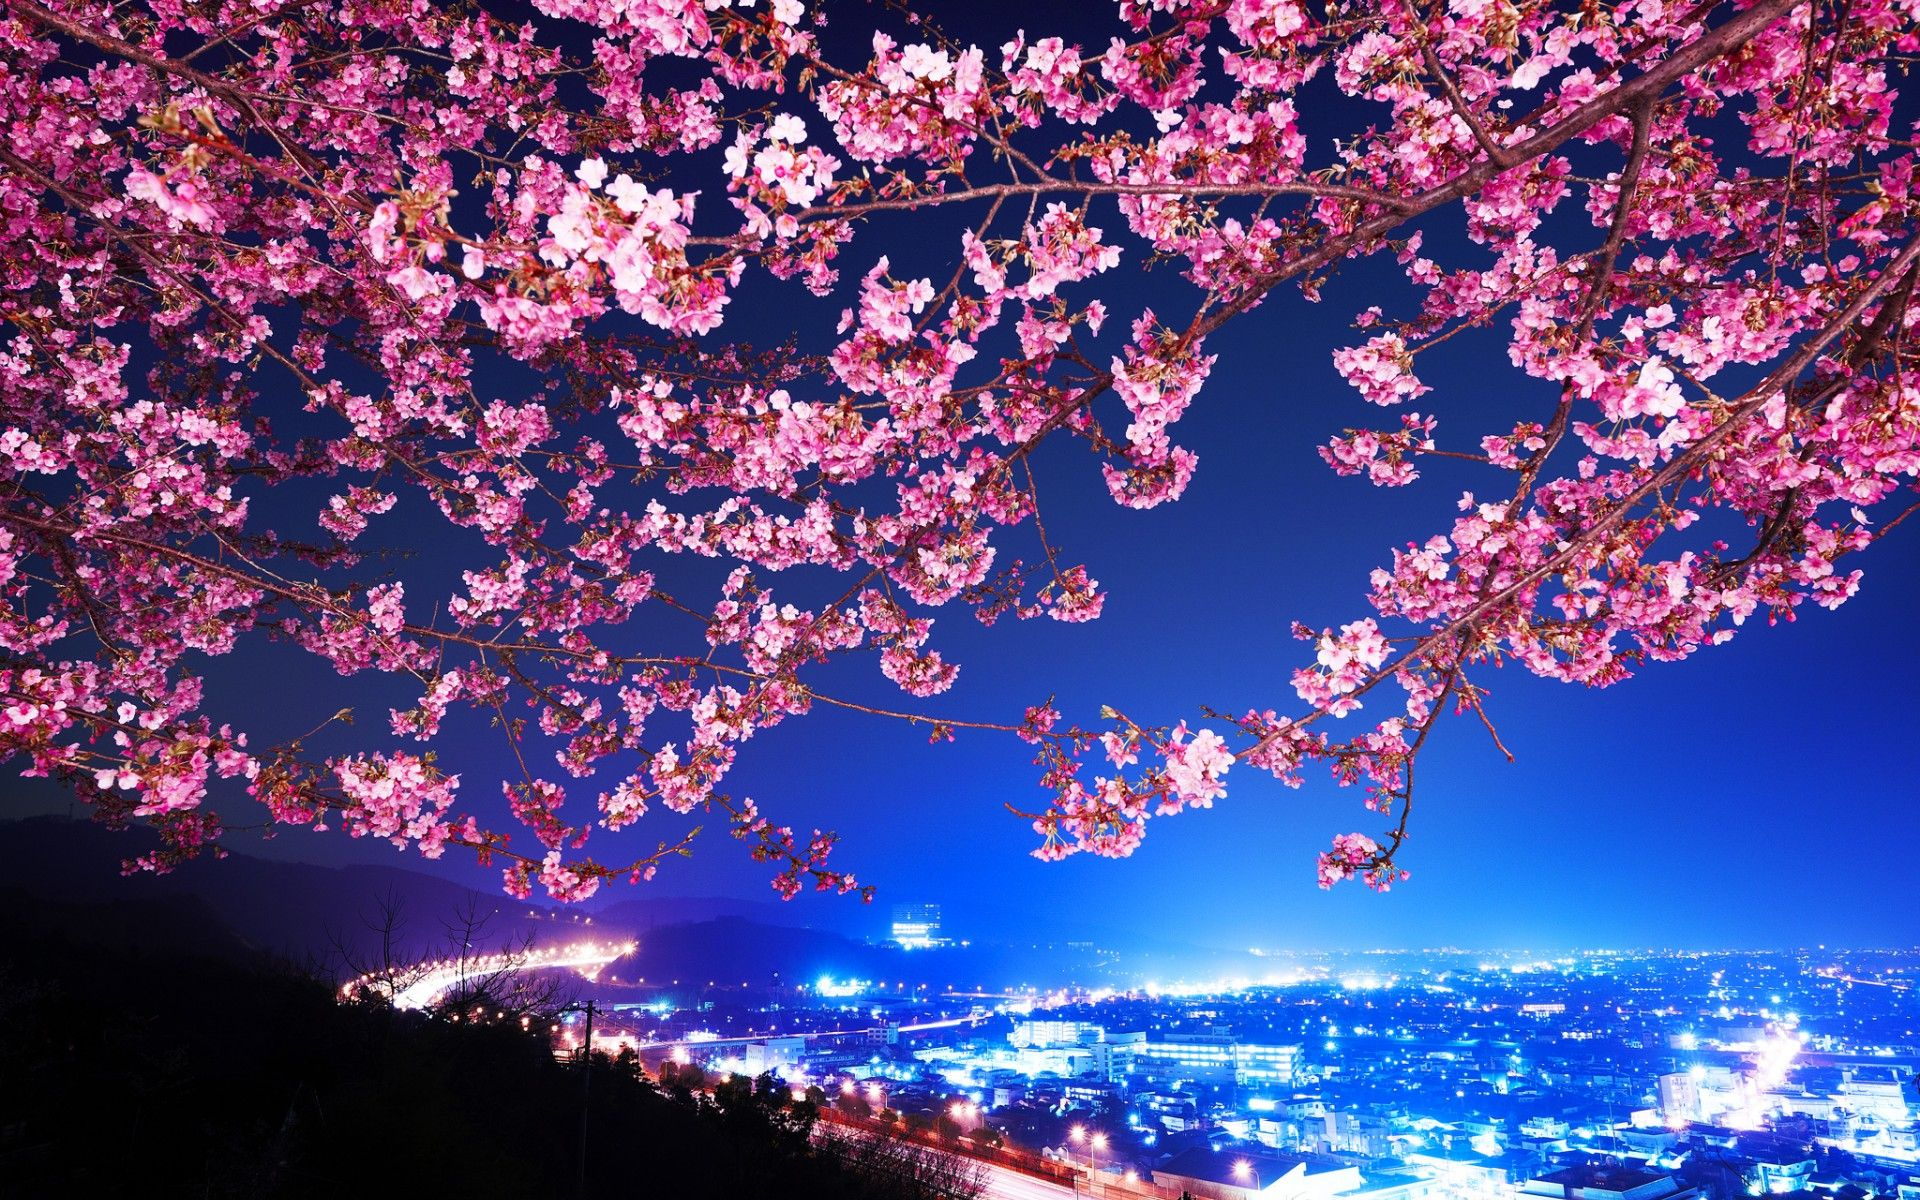 Cherry Blossom Tree At Night Wallpapers Top Free Cherry Blossom Tree At Night Backgrounds Wallpaperaccess